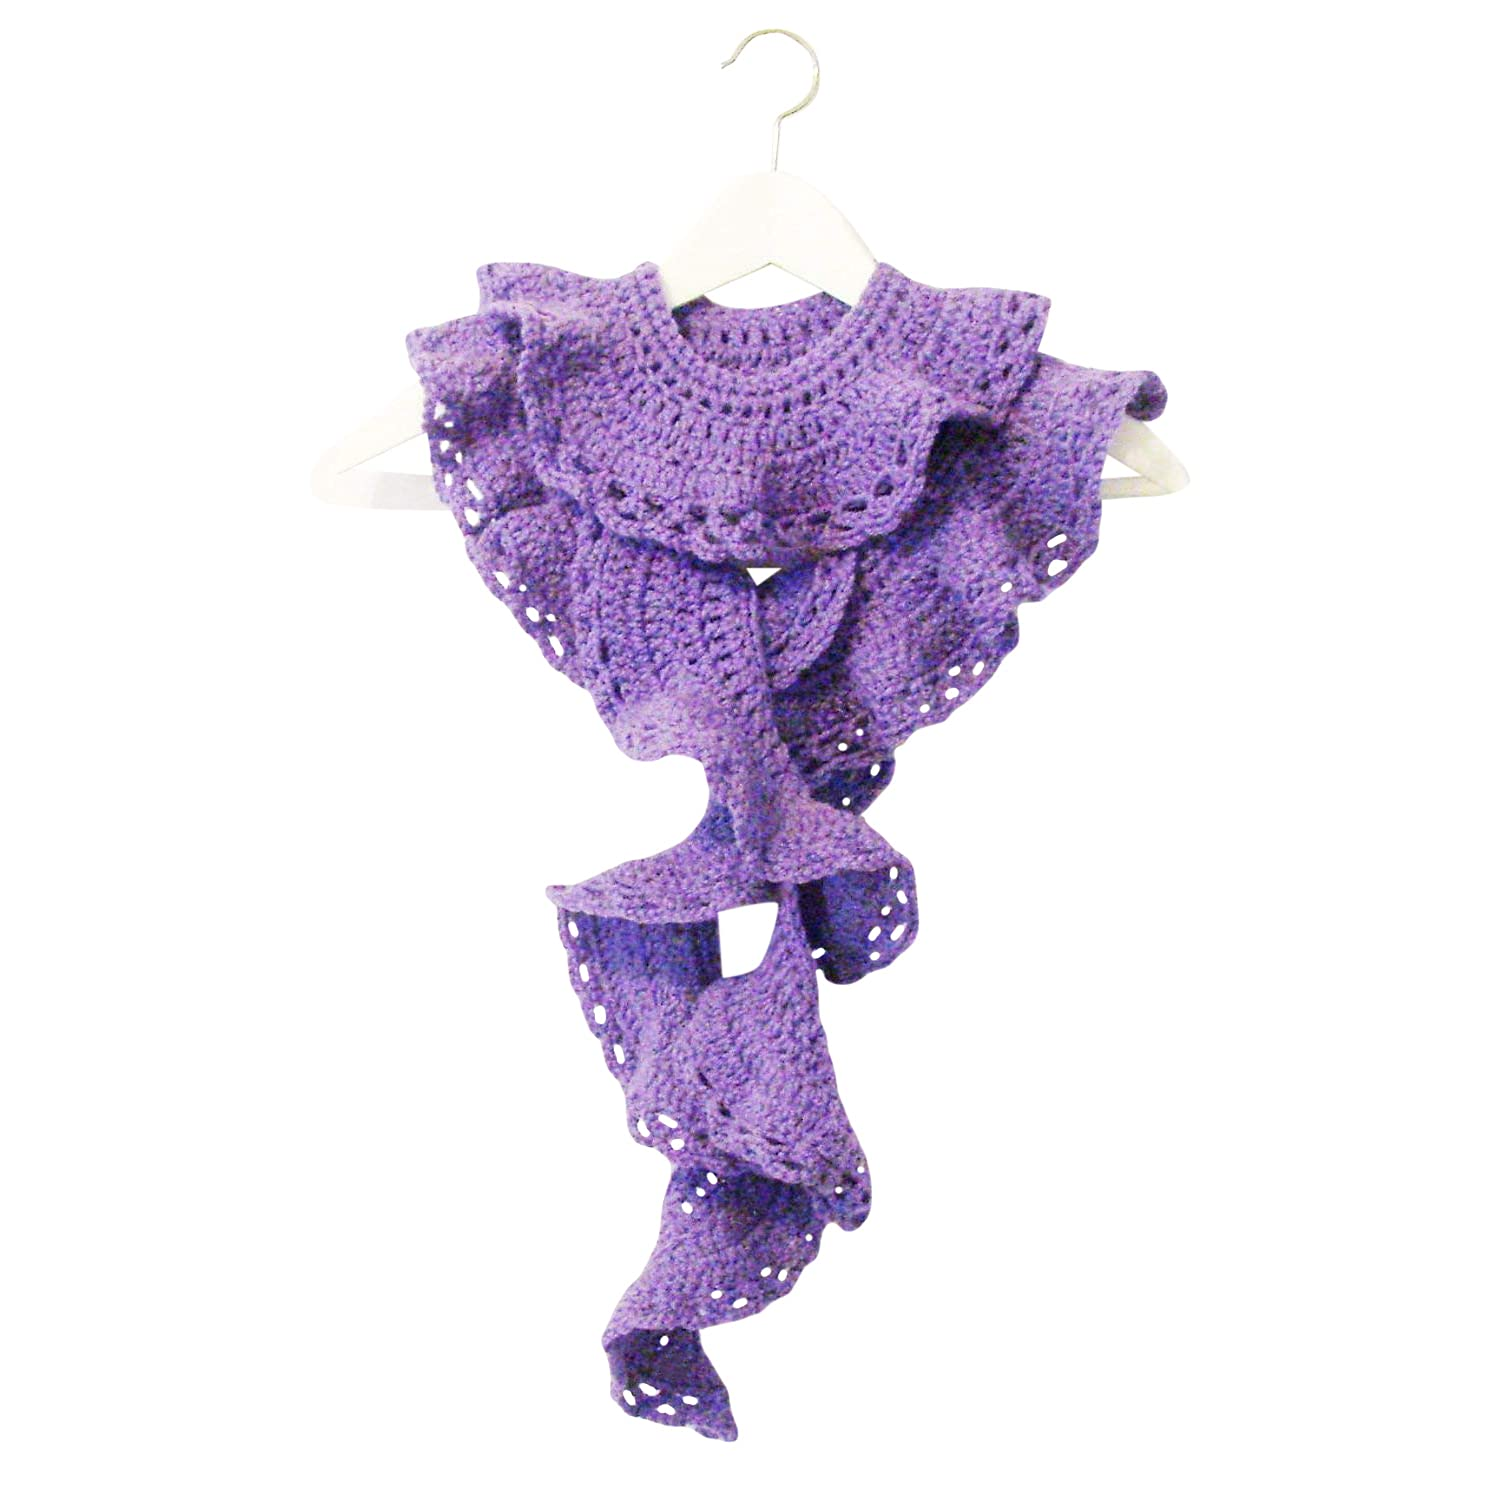 Handmade Lavender Lacy Scarf Boa Eco-Friendly Yarn Ranking TOP19 low-pricing ME2Designs